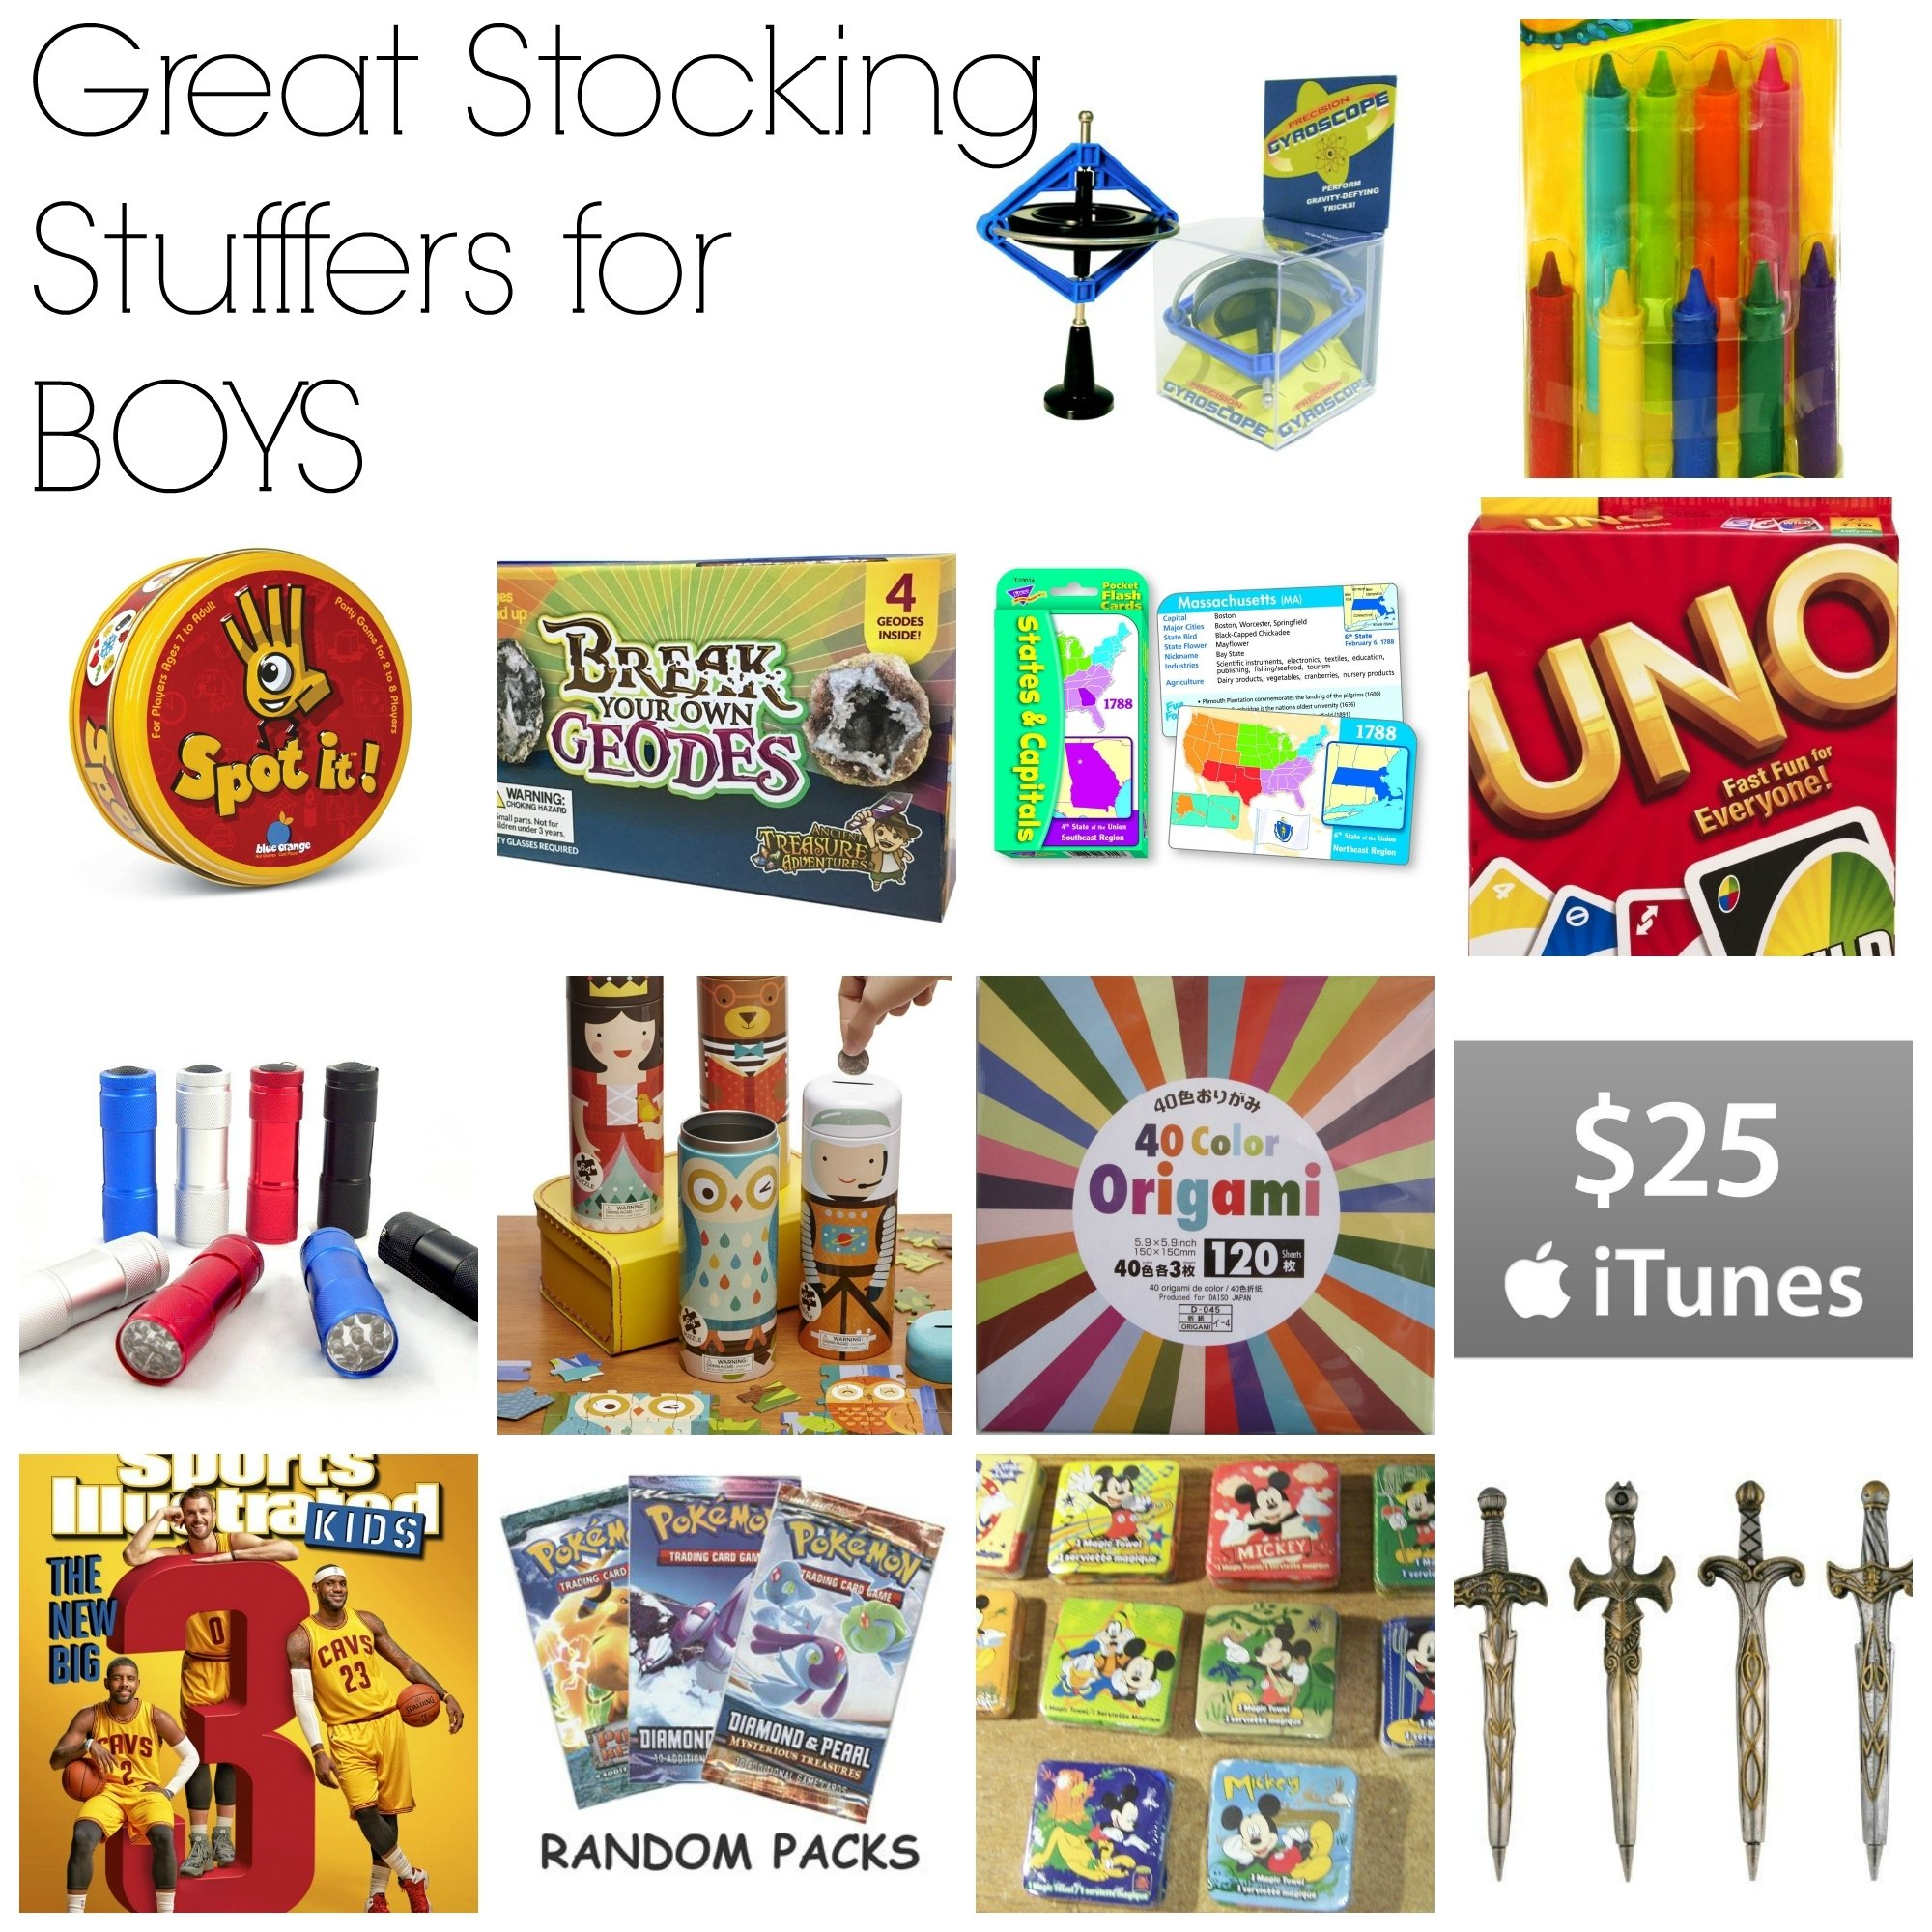 10 Wonderful Good Ideas For Stocking Stuffers great stocking stuffers for boys brooke romney writes 1 2020